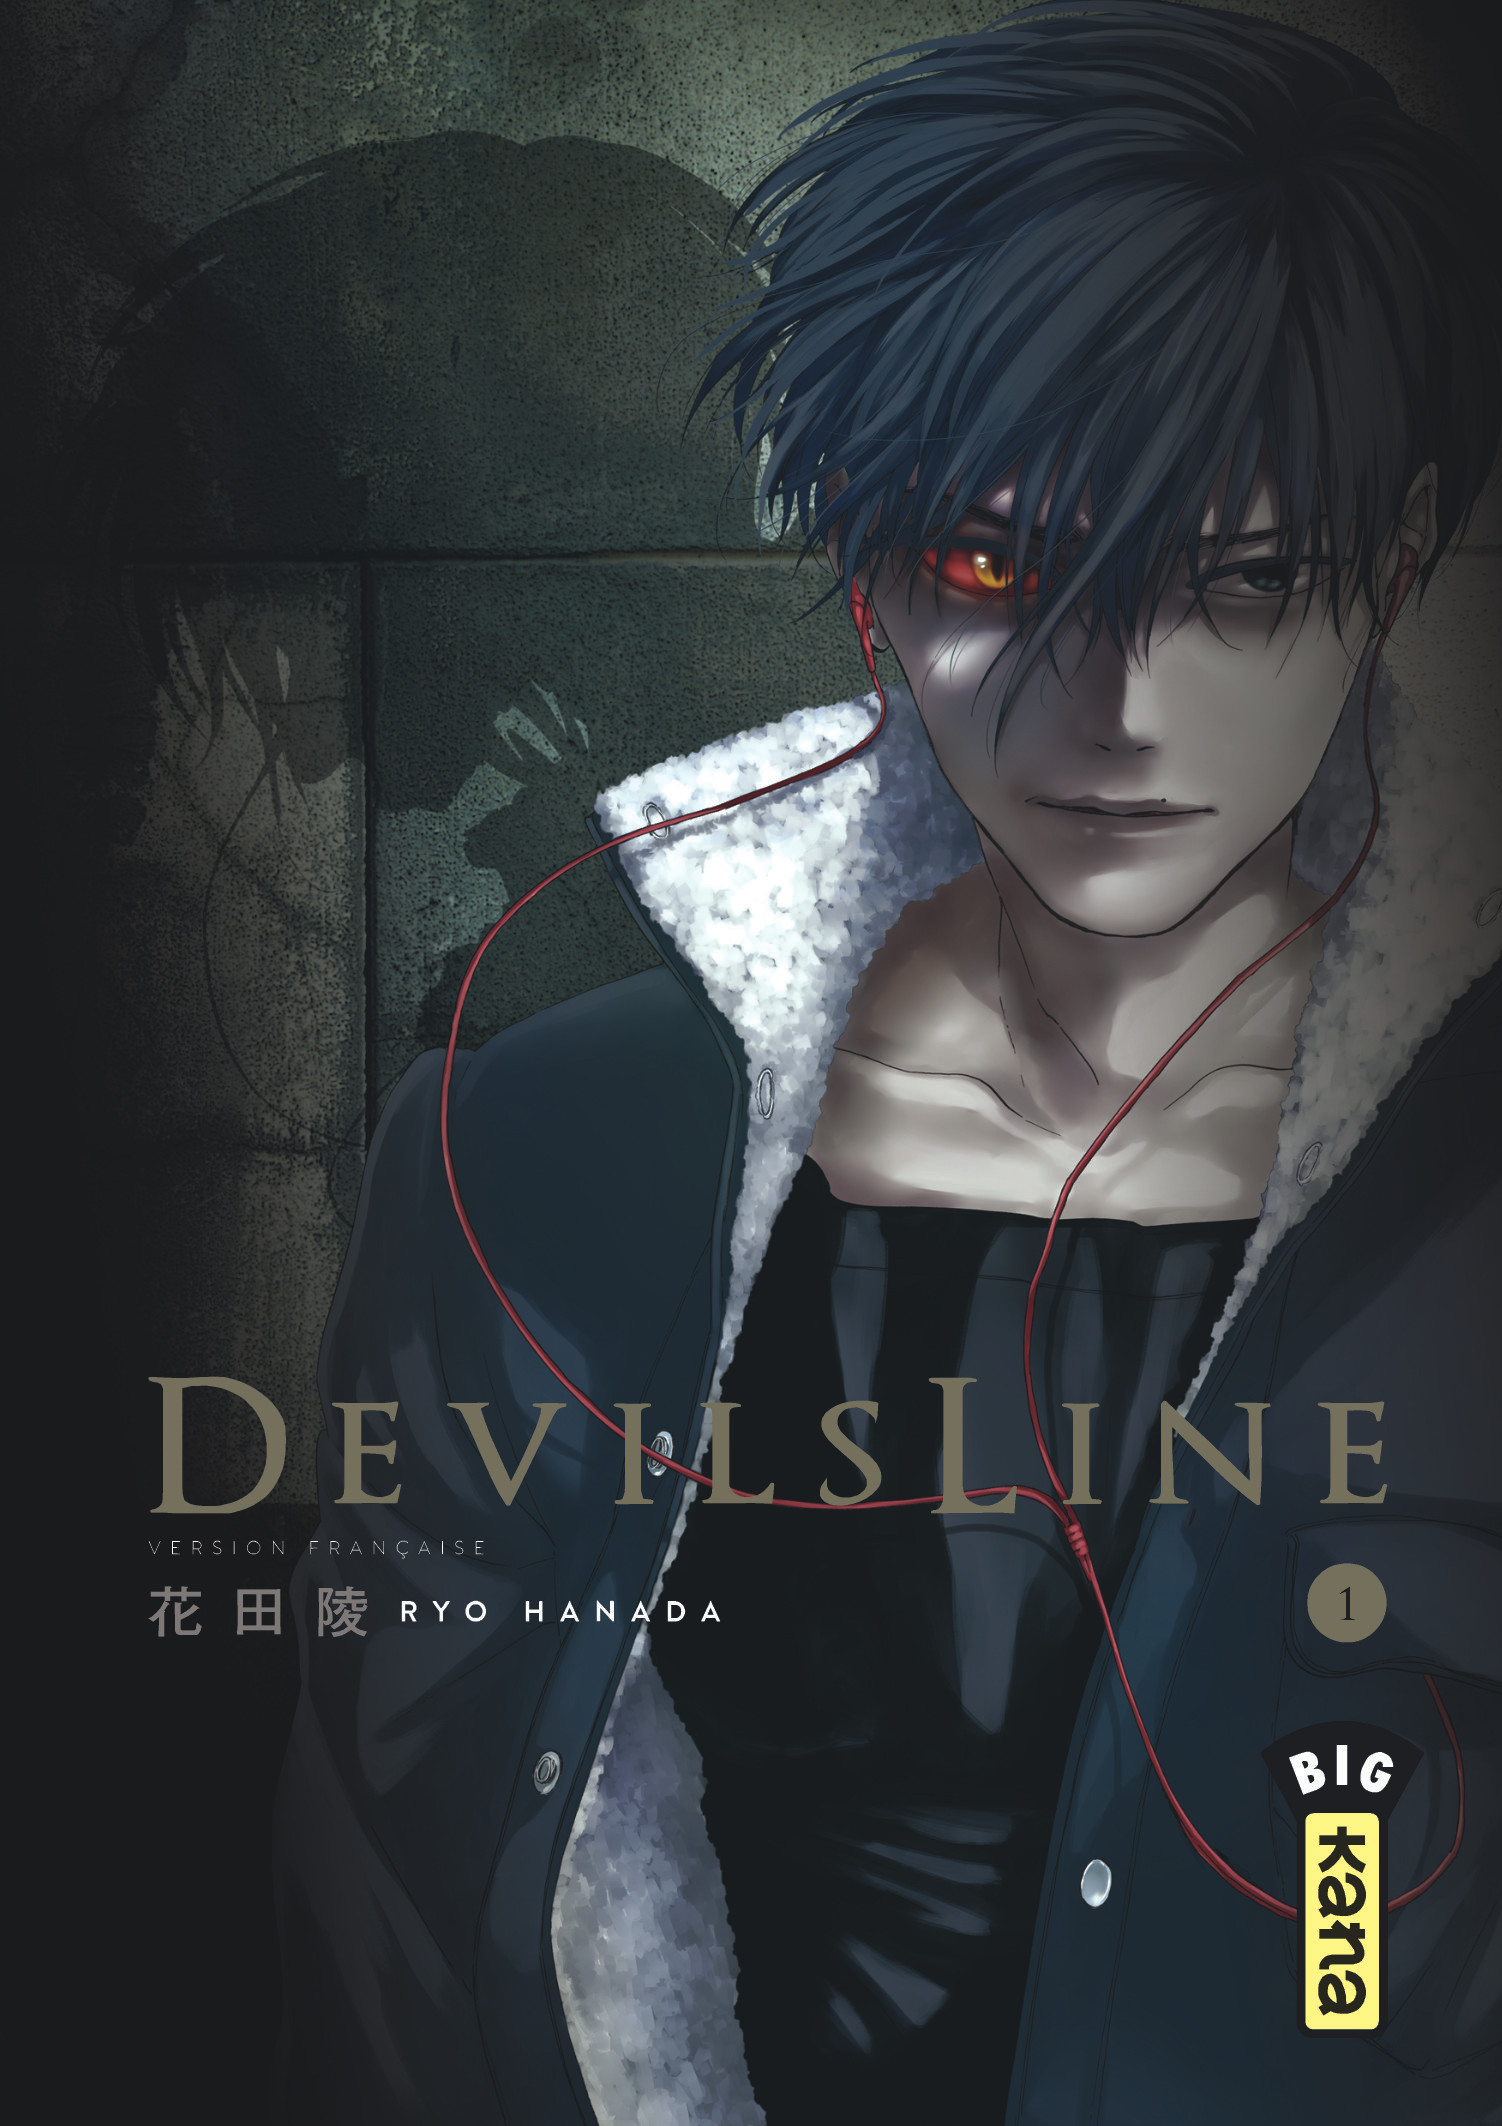 [ MANGA / ANIME ] Devil's Line // DevilsLine Devilsline-manga-volume-1-simple-232310